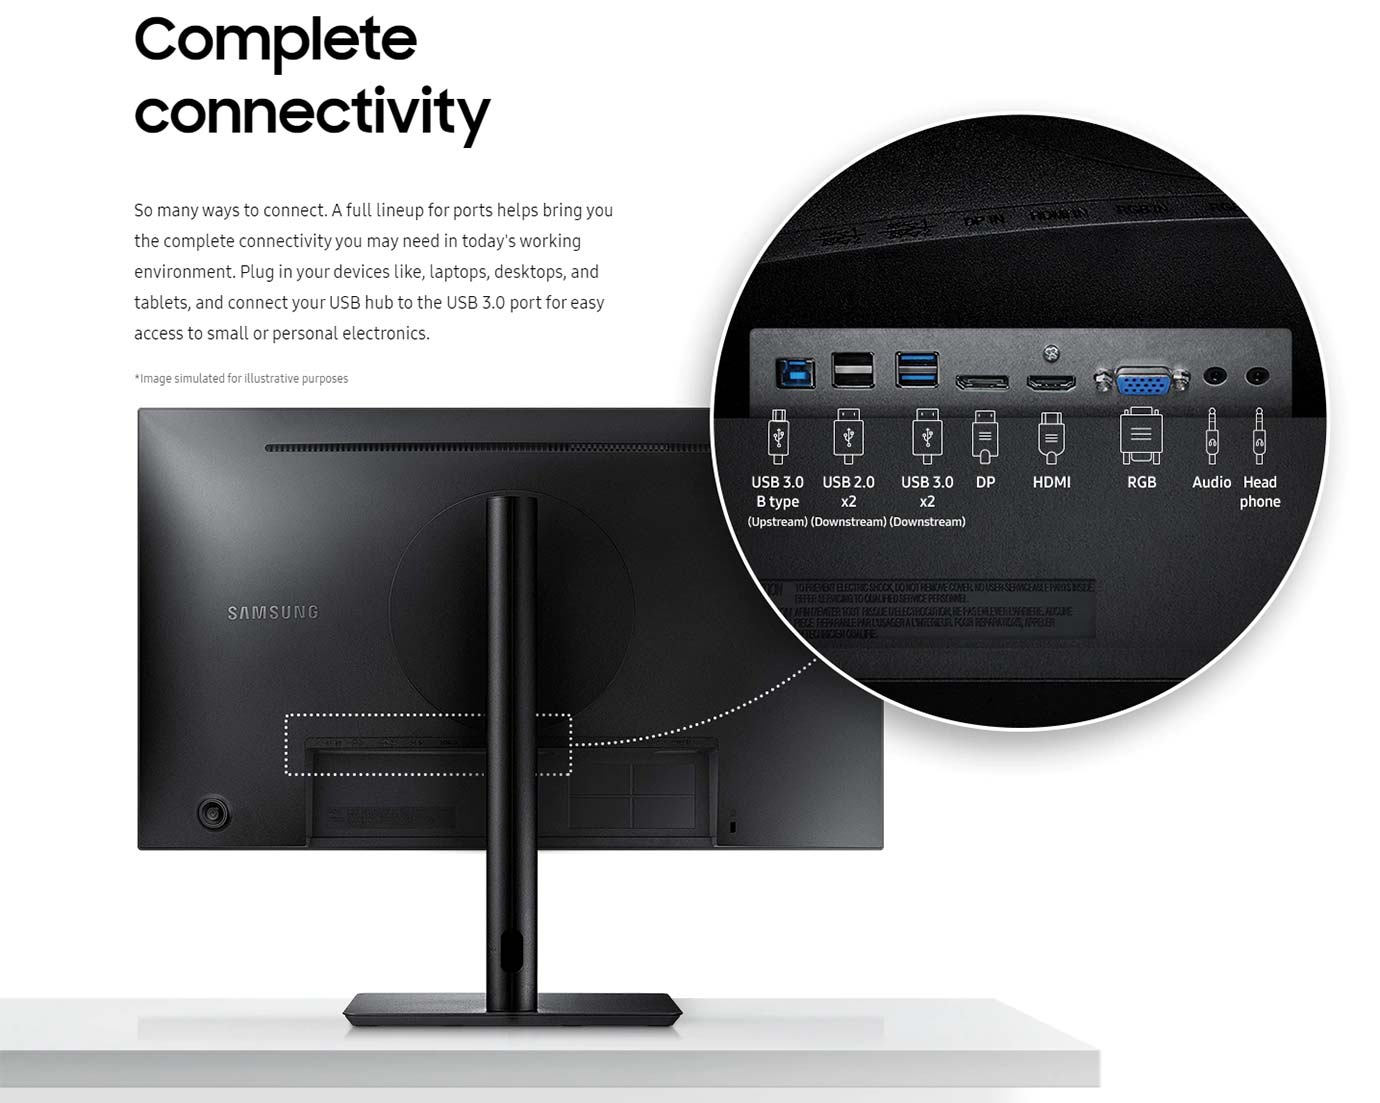 Complete connectivity